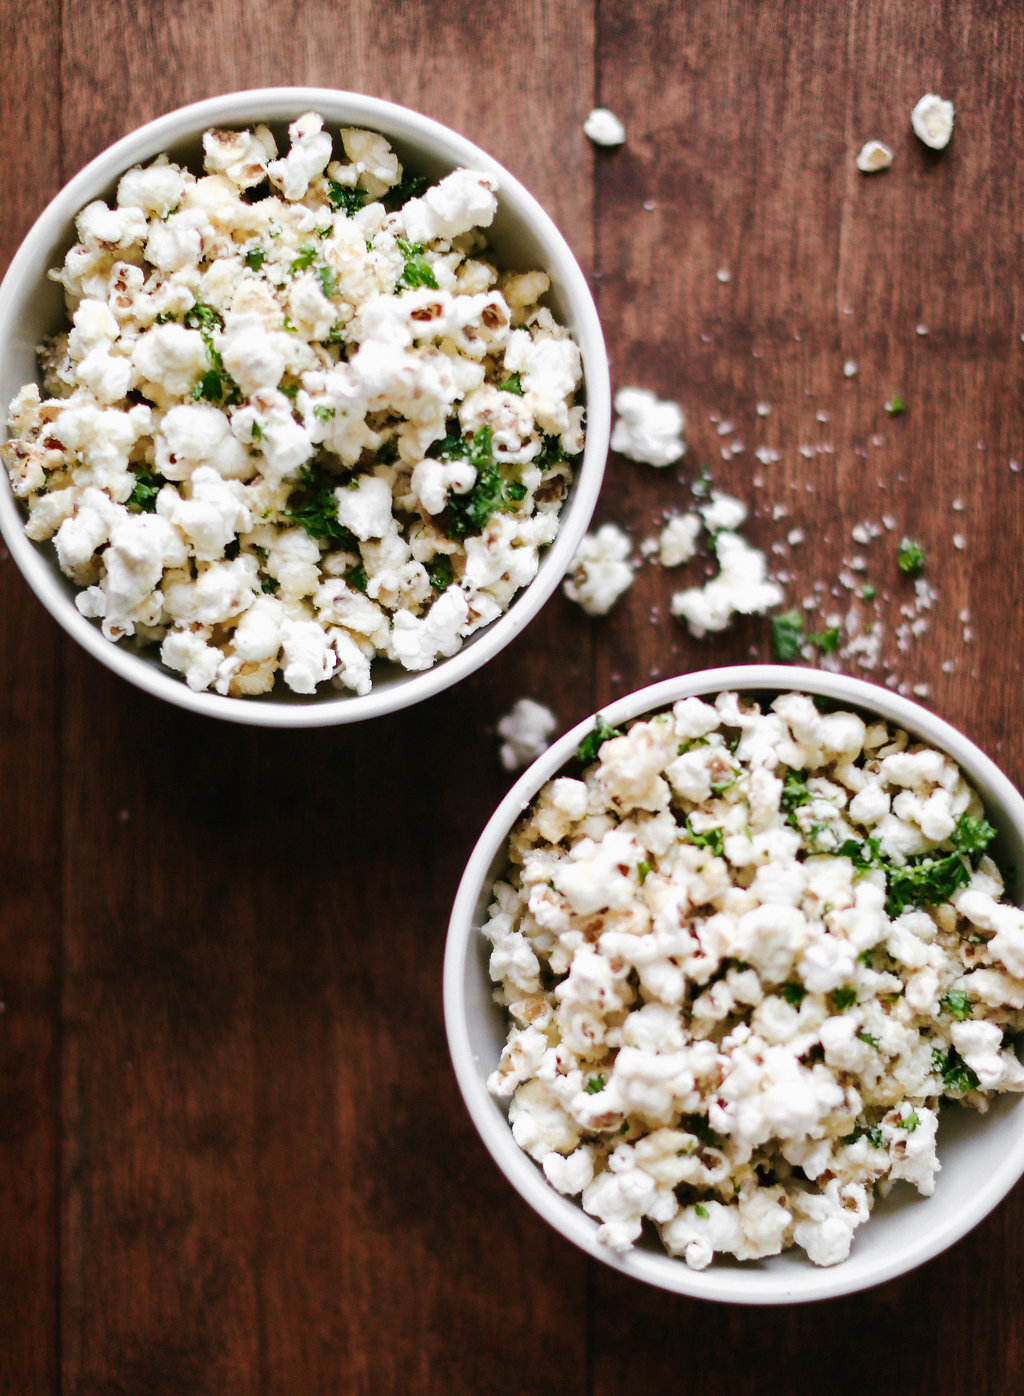 Everyone loves a good bowl of popcorn during a movie, so why not fancy it up a bit and serve some options. The Parmesan & Parsley popcorn is perfect for your